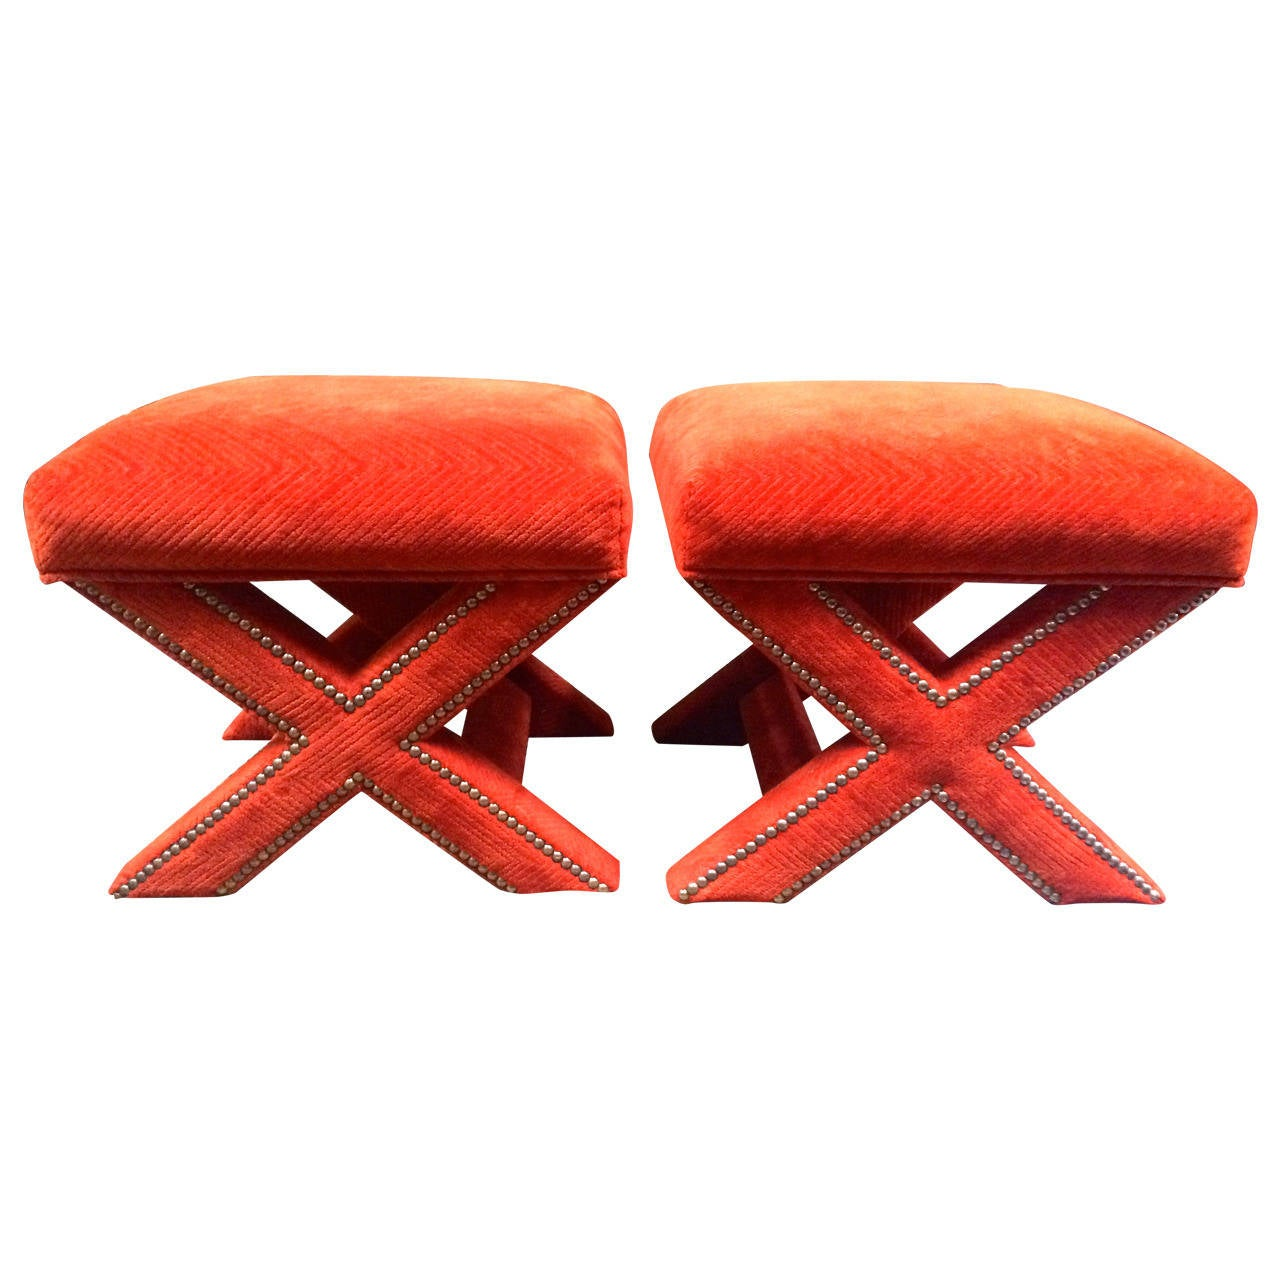 Marvelous photograph of Legs pair of orange velvet ottomans at 1stdibs with #C62B05 color and 1280x1280 pixels